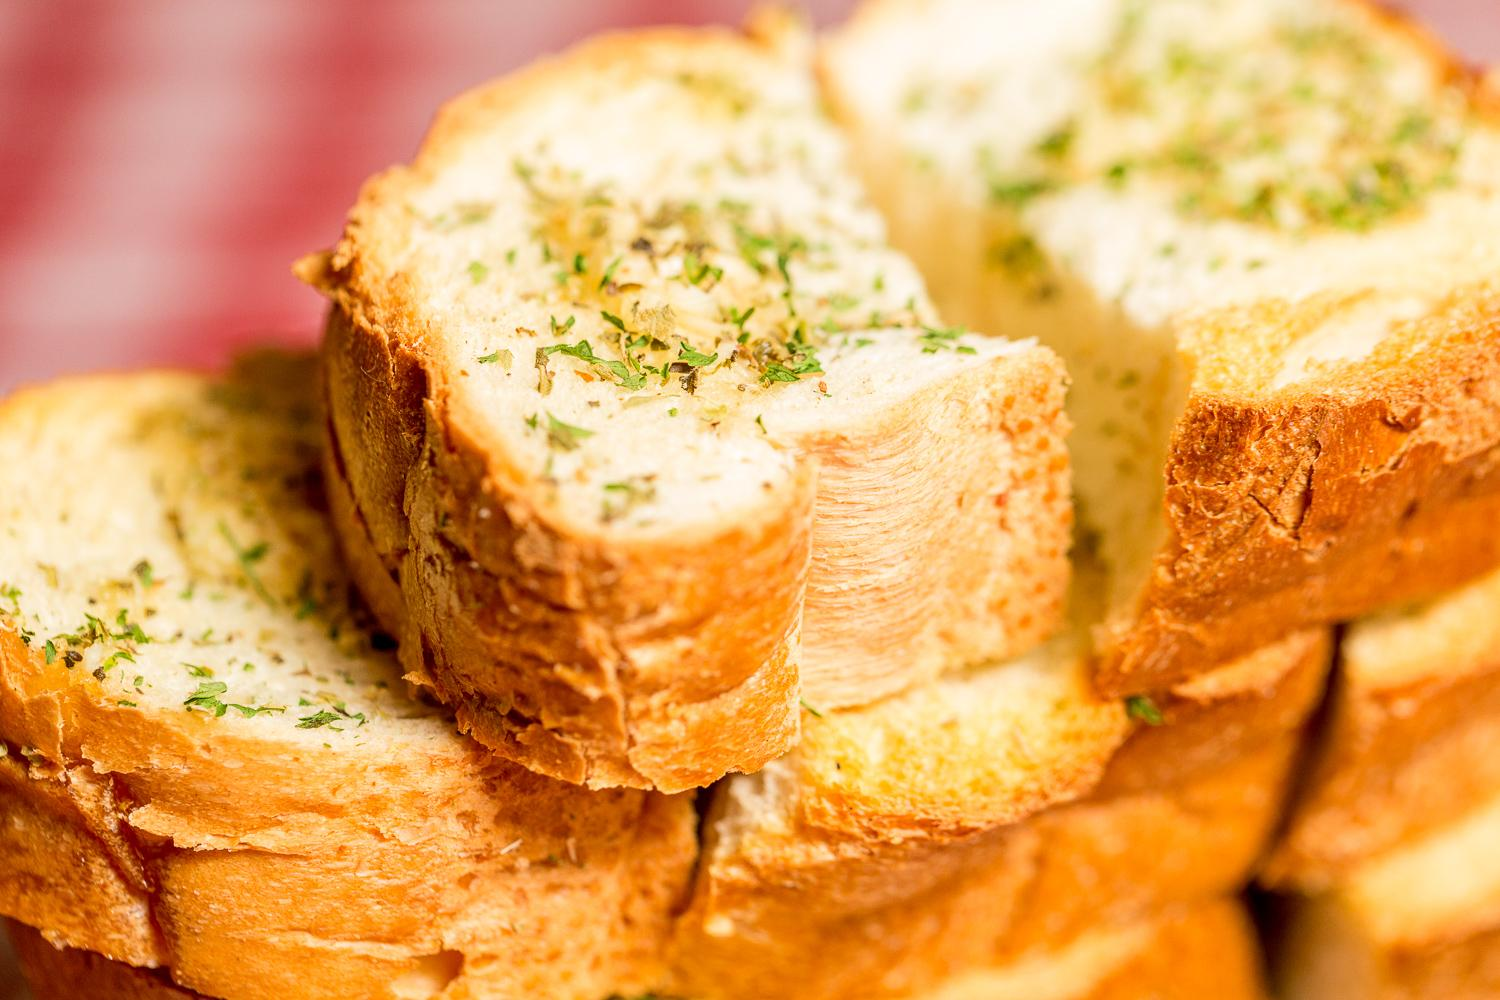 A mountain of Scotti's toasted Italian garlic bread / Image: Daniel Smyth Photography